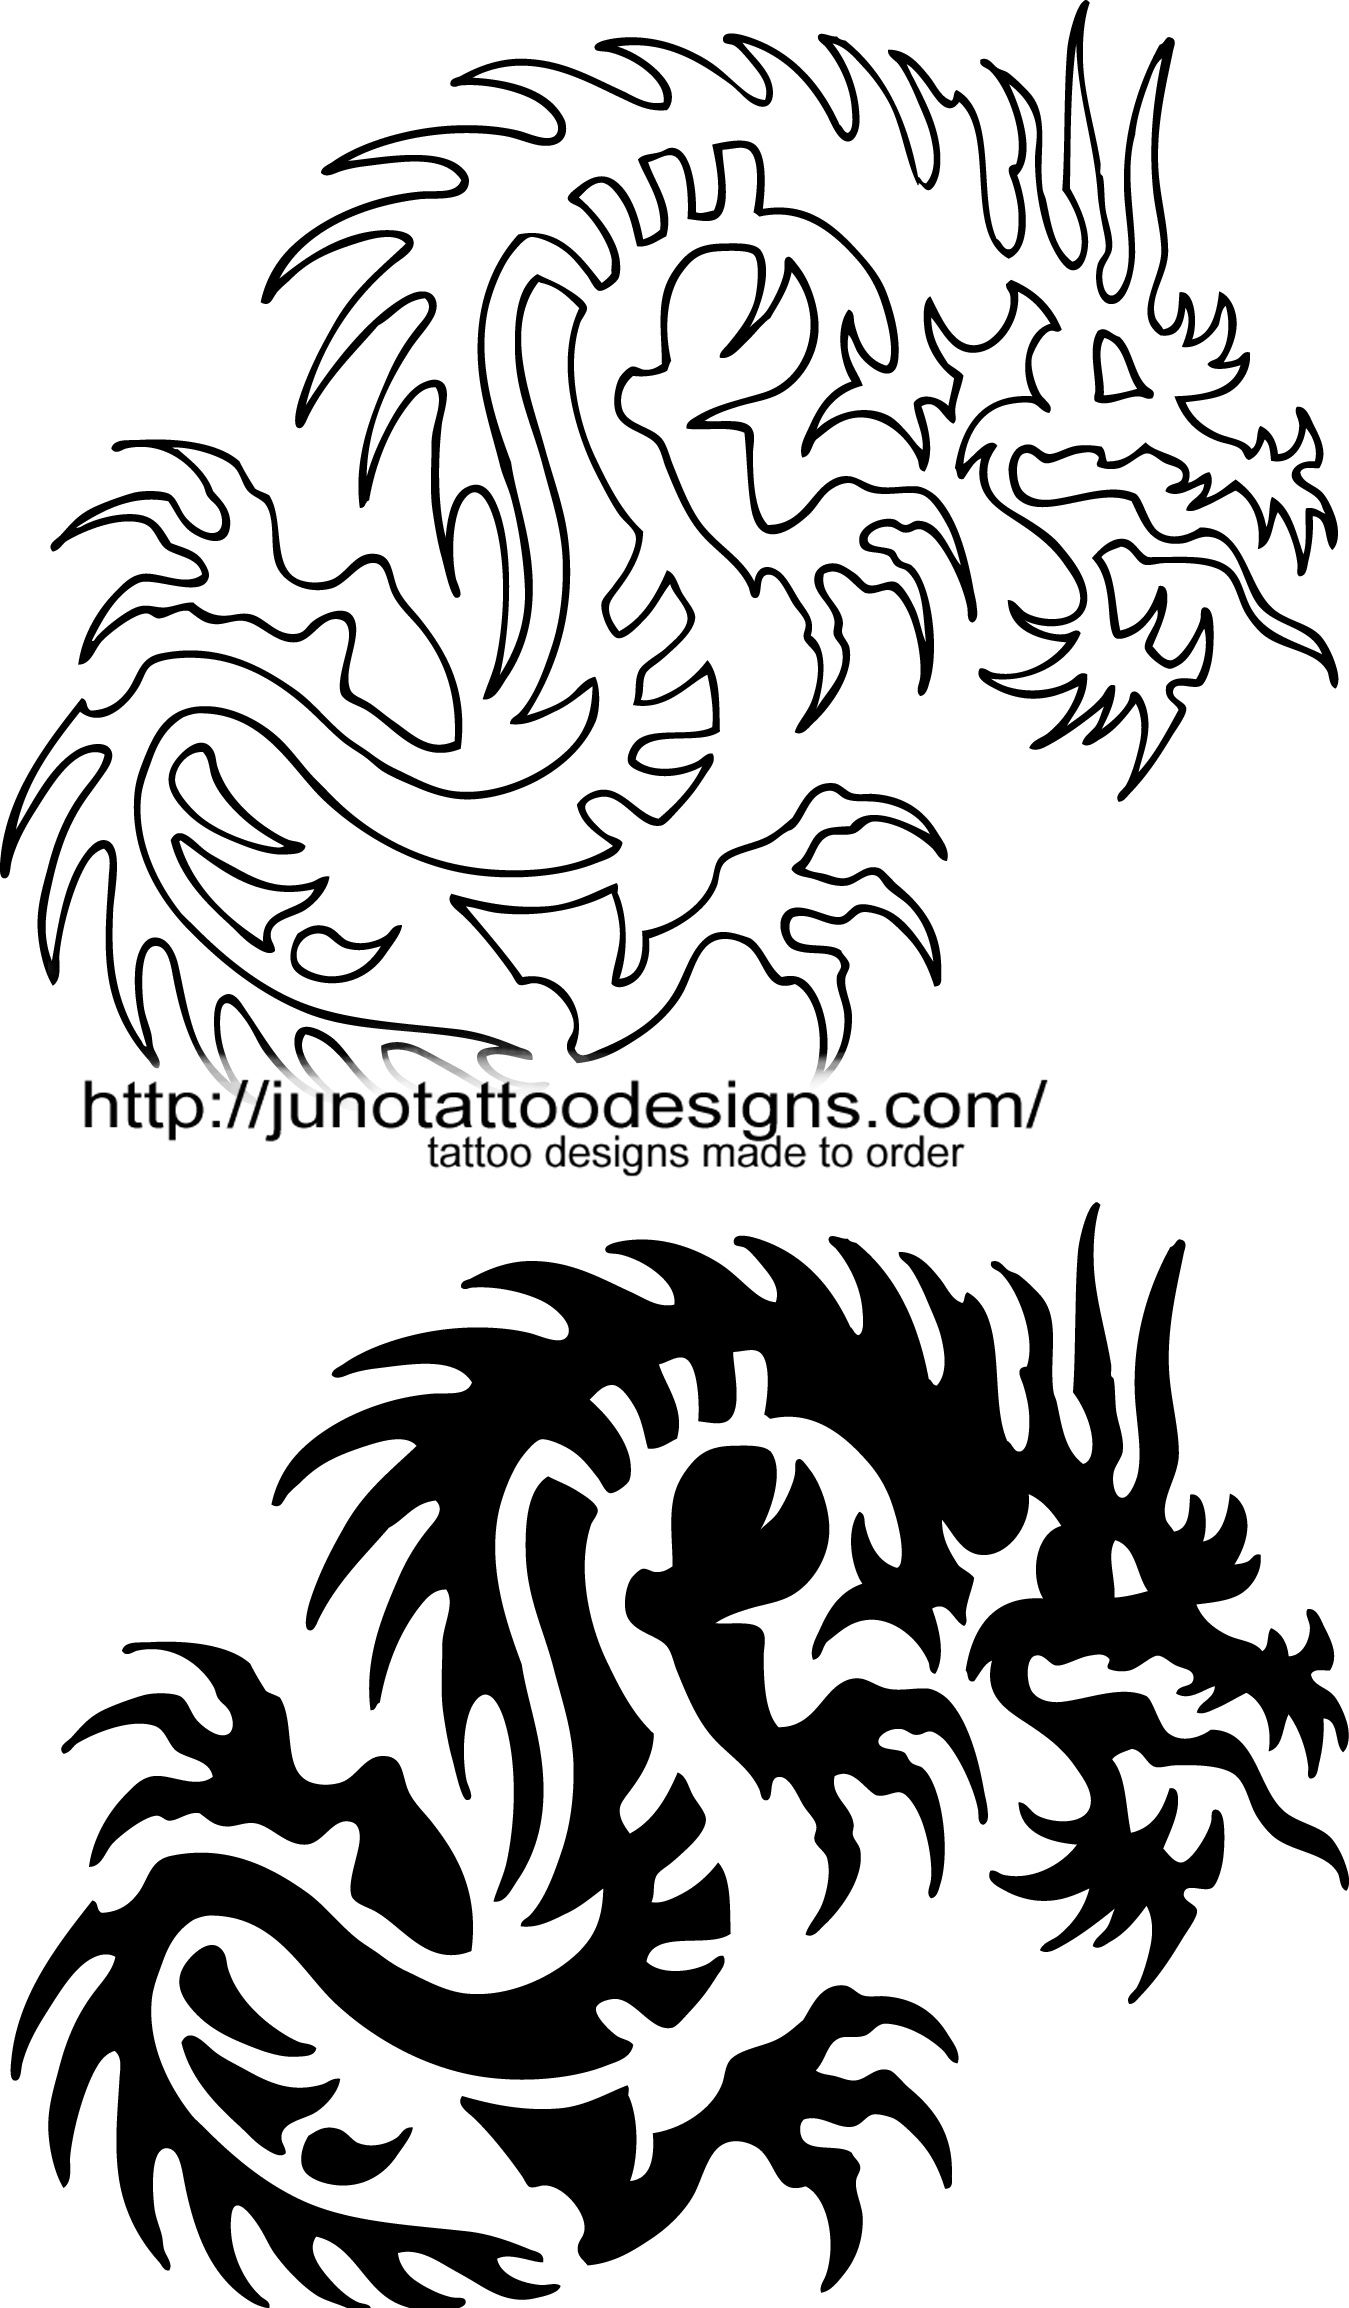 Idea by Iam Psycleman on designs in 2020 Free tattoo